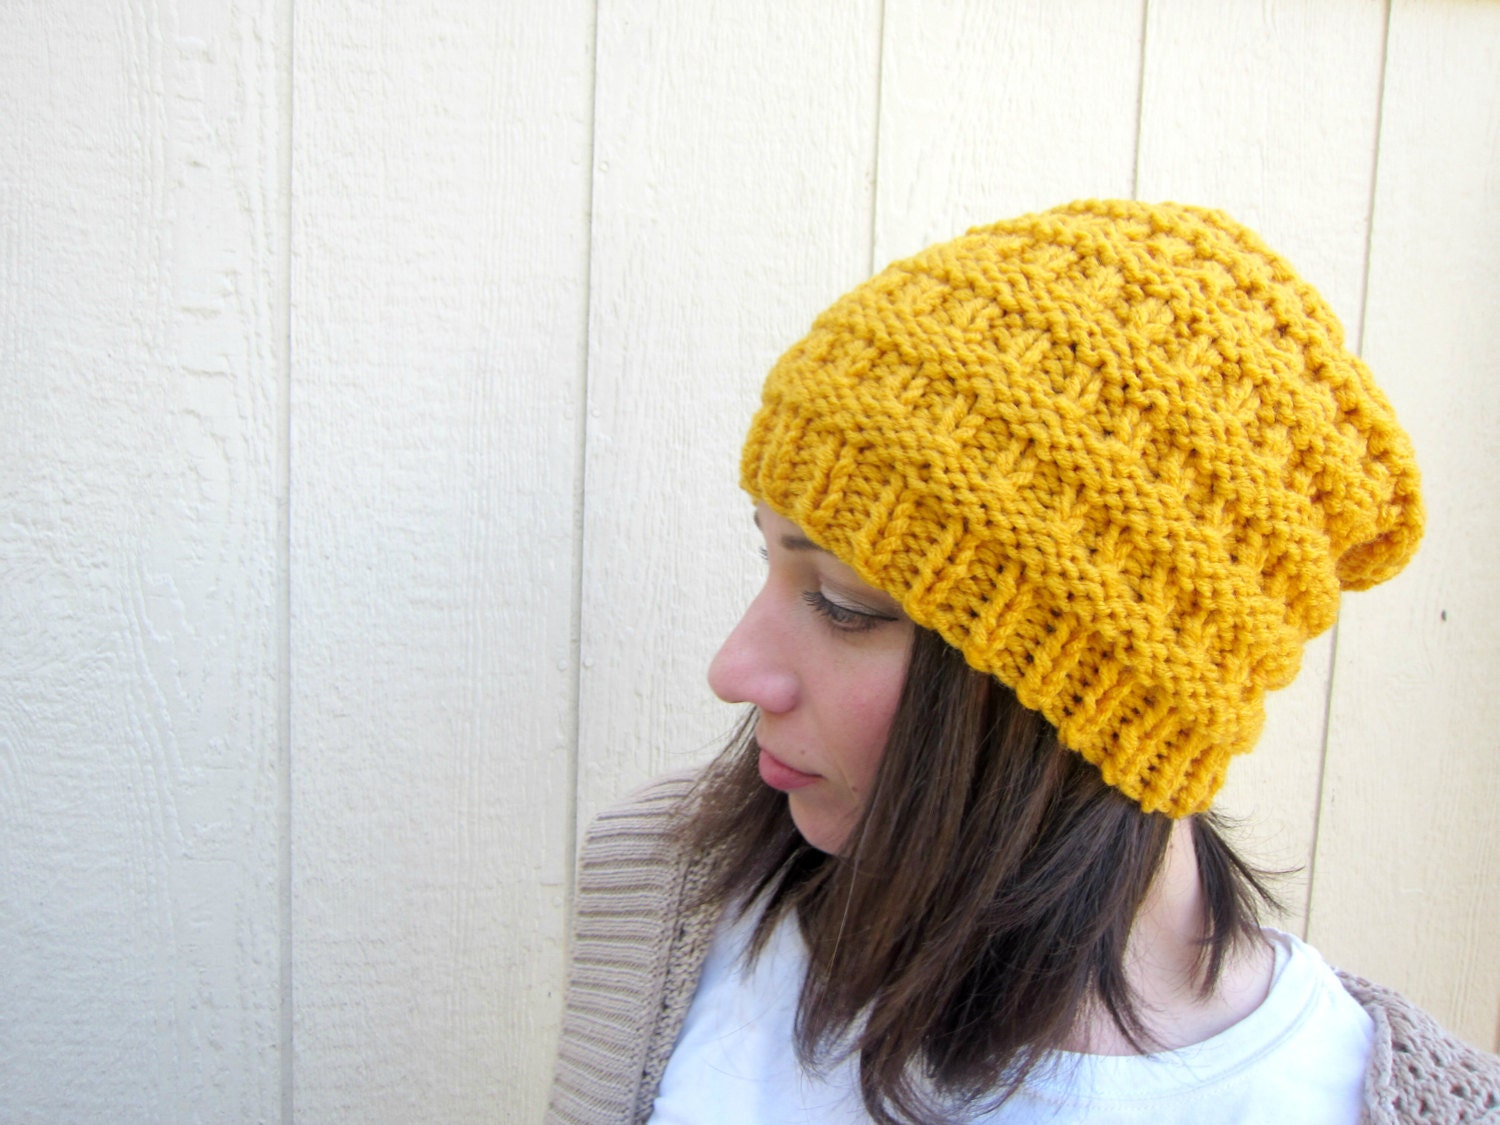 9b3025a7 Yellow Knit Hat Mens Knitted Hats Etsy Crochet Beanie Slouchy Womens Cap  Accessories Handmade Gifts for Guys Fashion Beanies Mustard